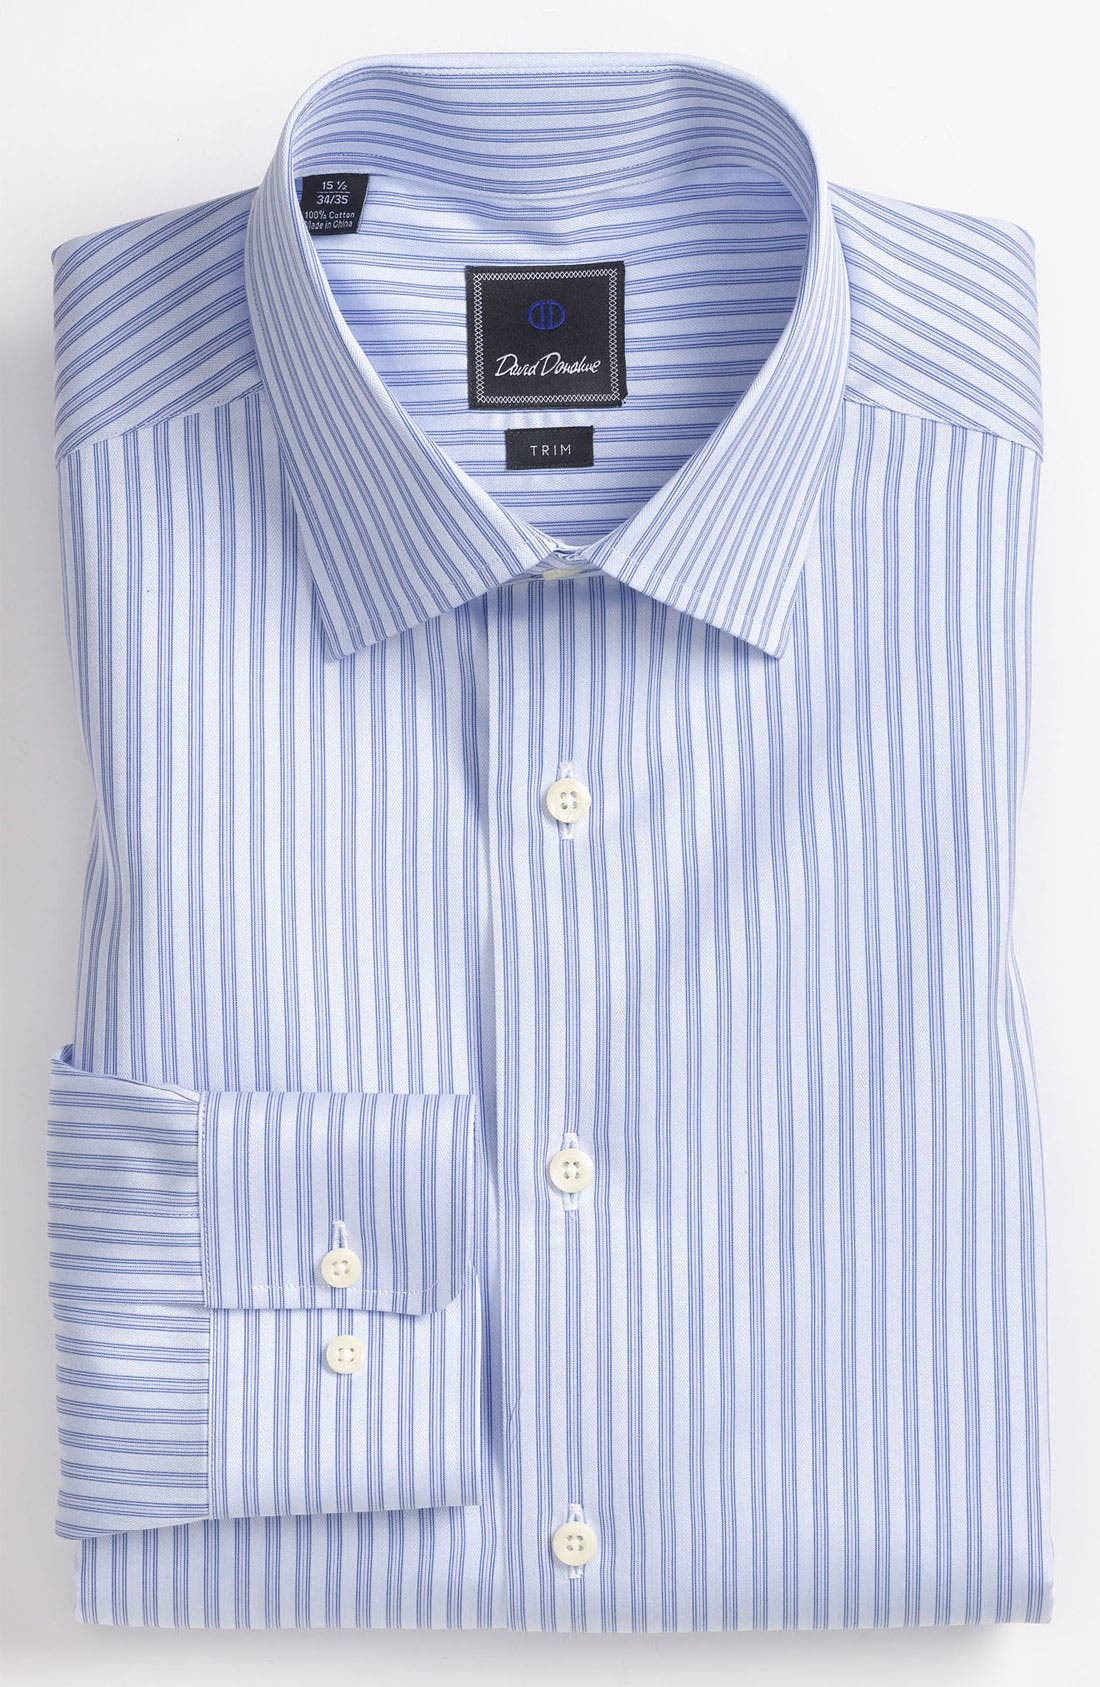 Main Image - David Donahue Trim Fit Dress Shirt